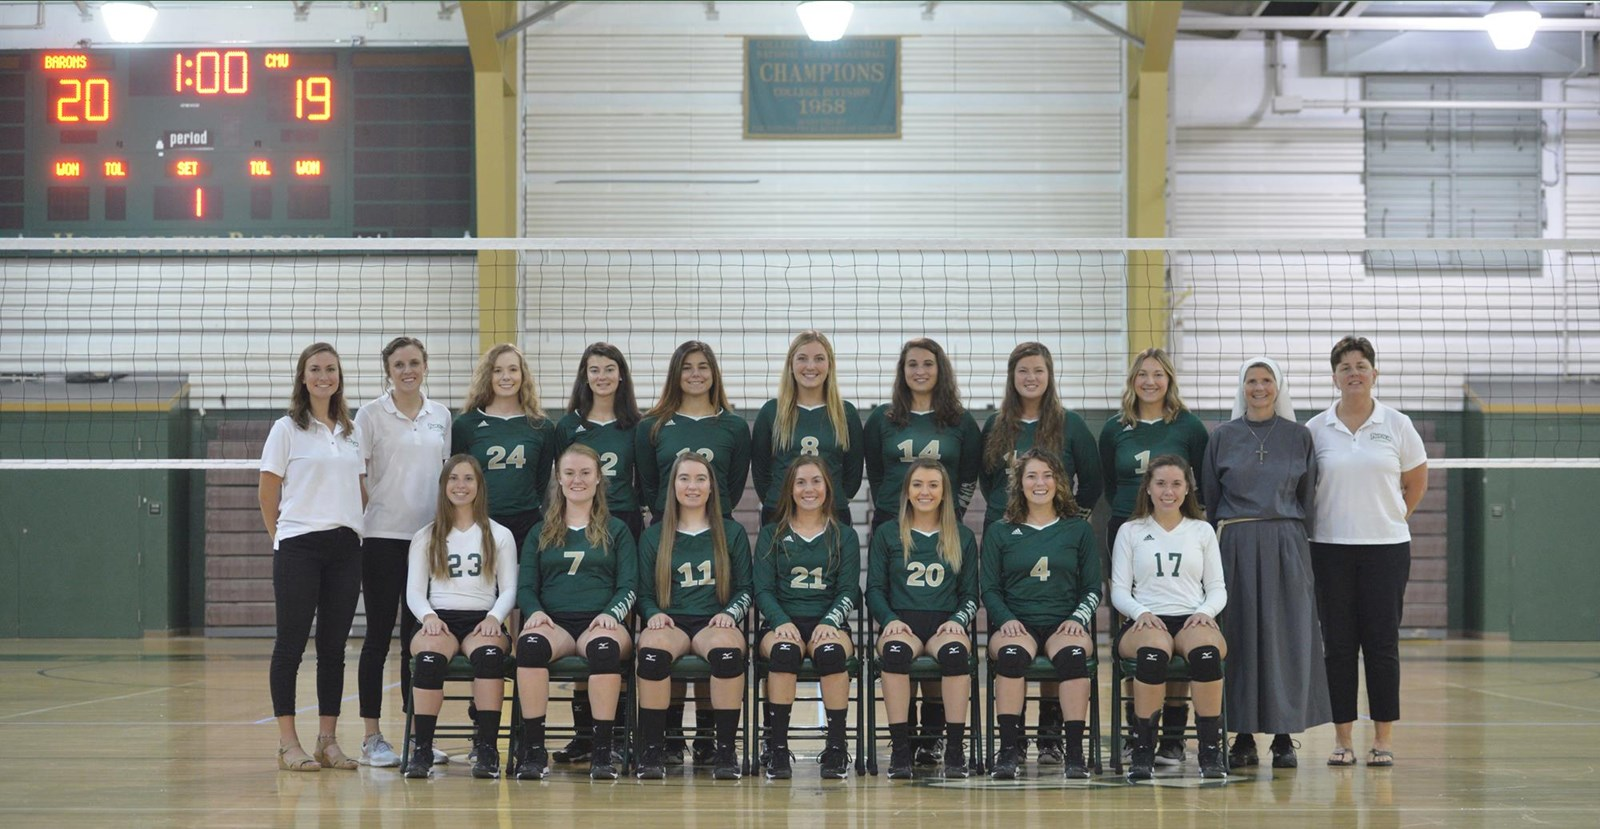 2019 Women S Volleyball Roster Franciscan University Of Steubenville